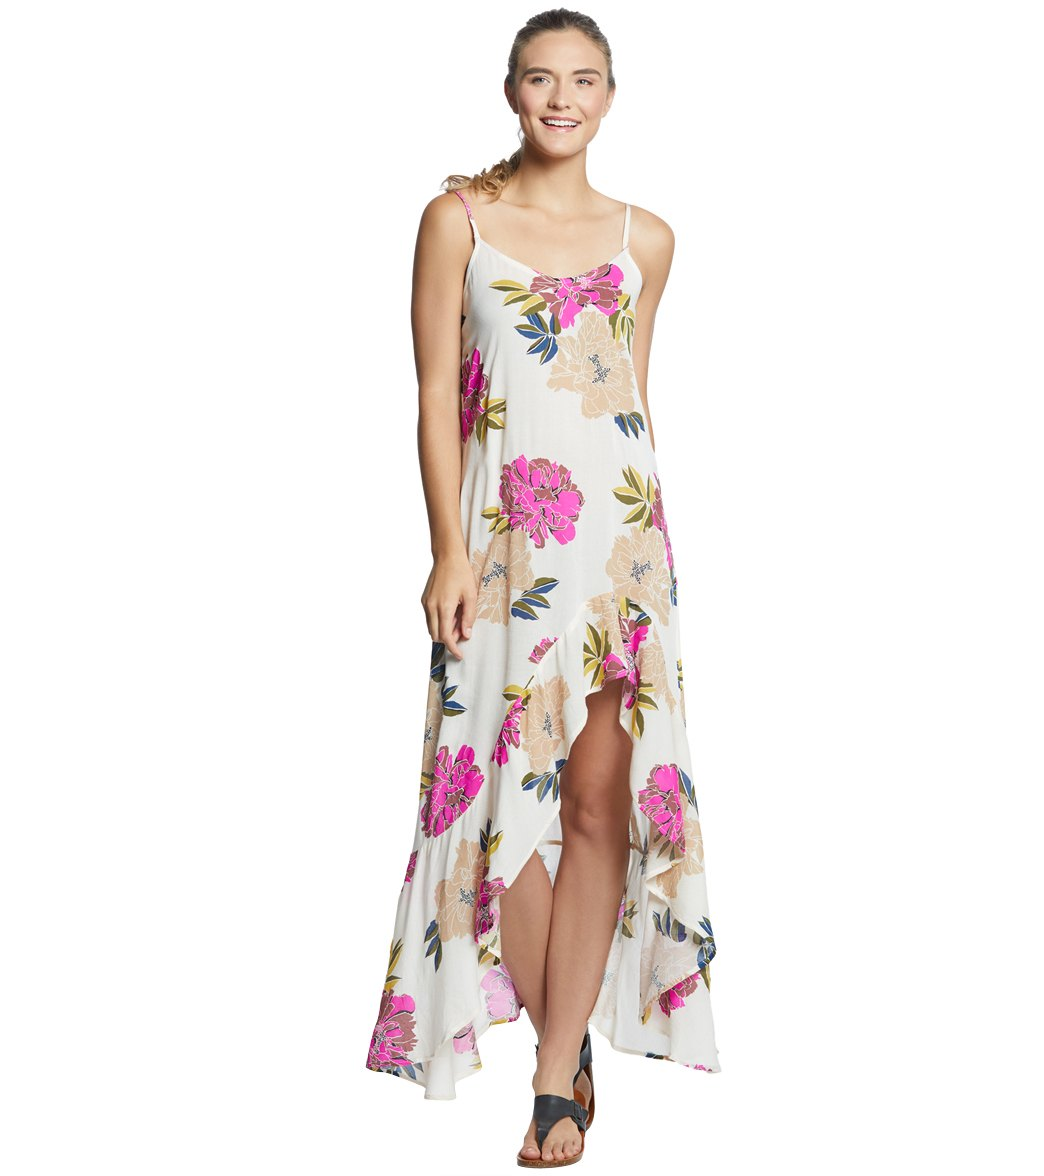 f45a11f8a6 Billabong Women's Kick It Up Maxi Dress at SwimOutlet.com - Free Shipping